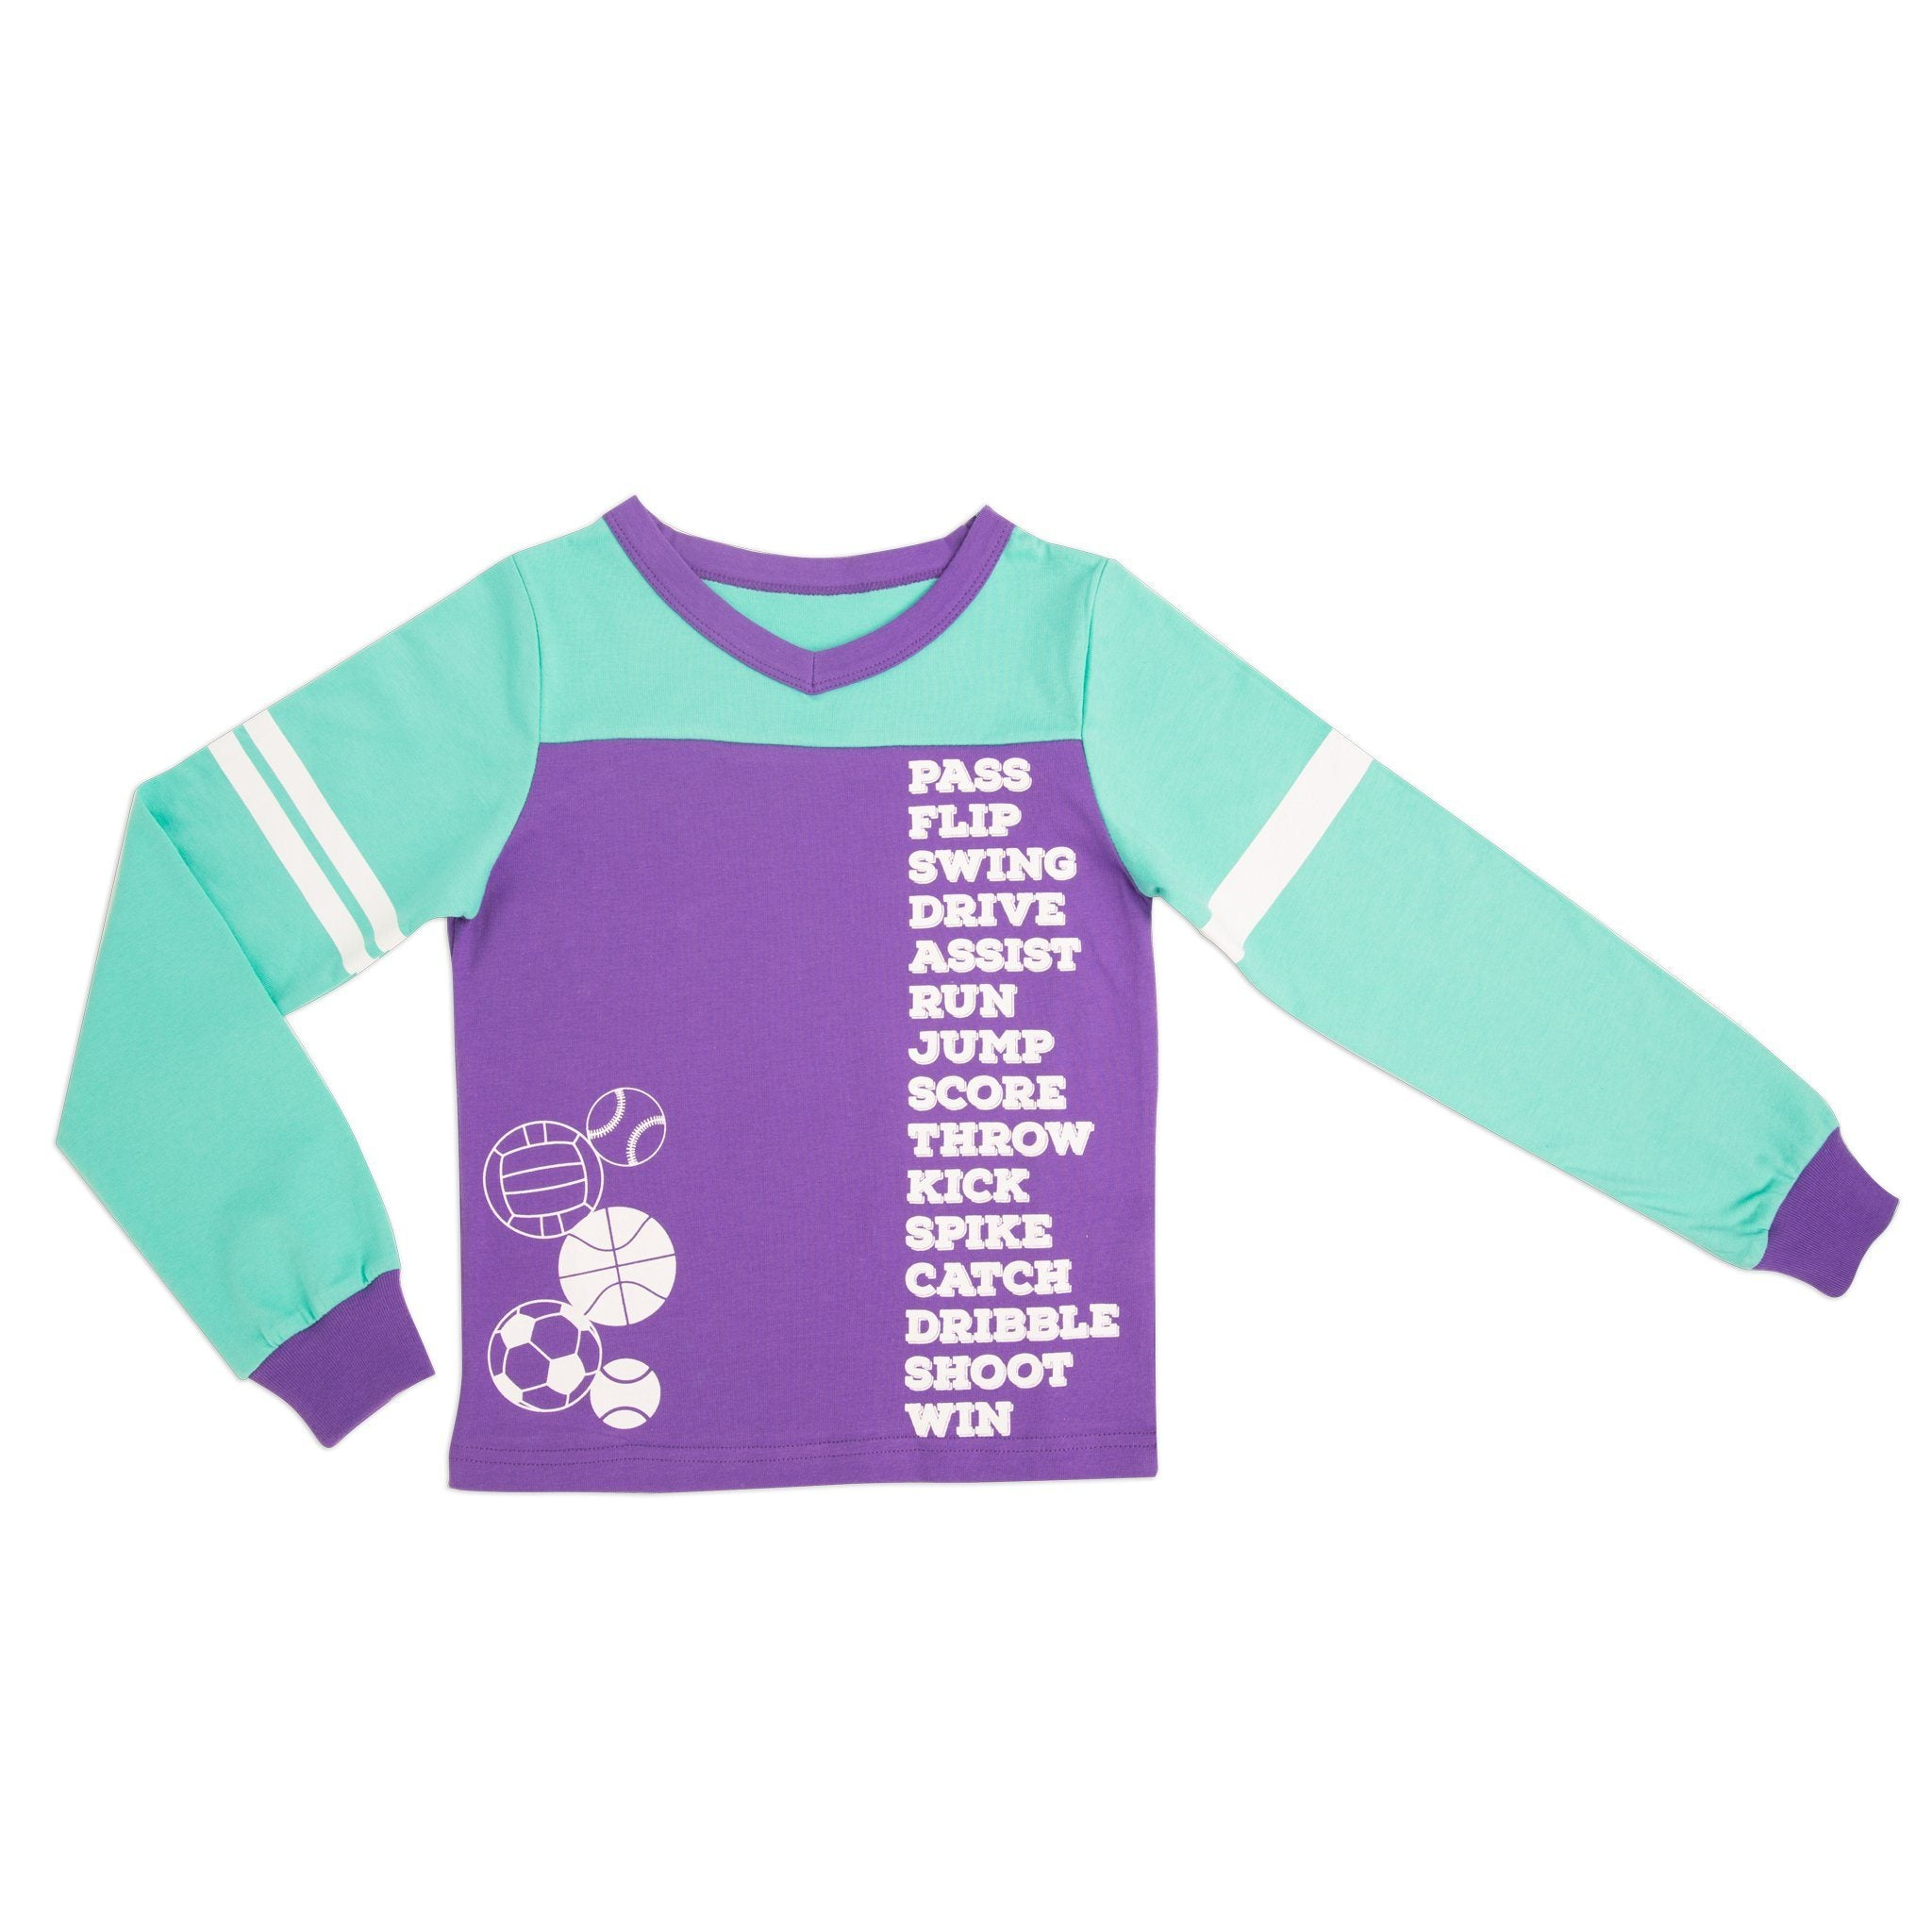 Dream Team sporty matching girl-sized sports-themed teal and purple PJ top in varying sizes for girls.